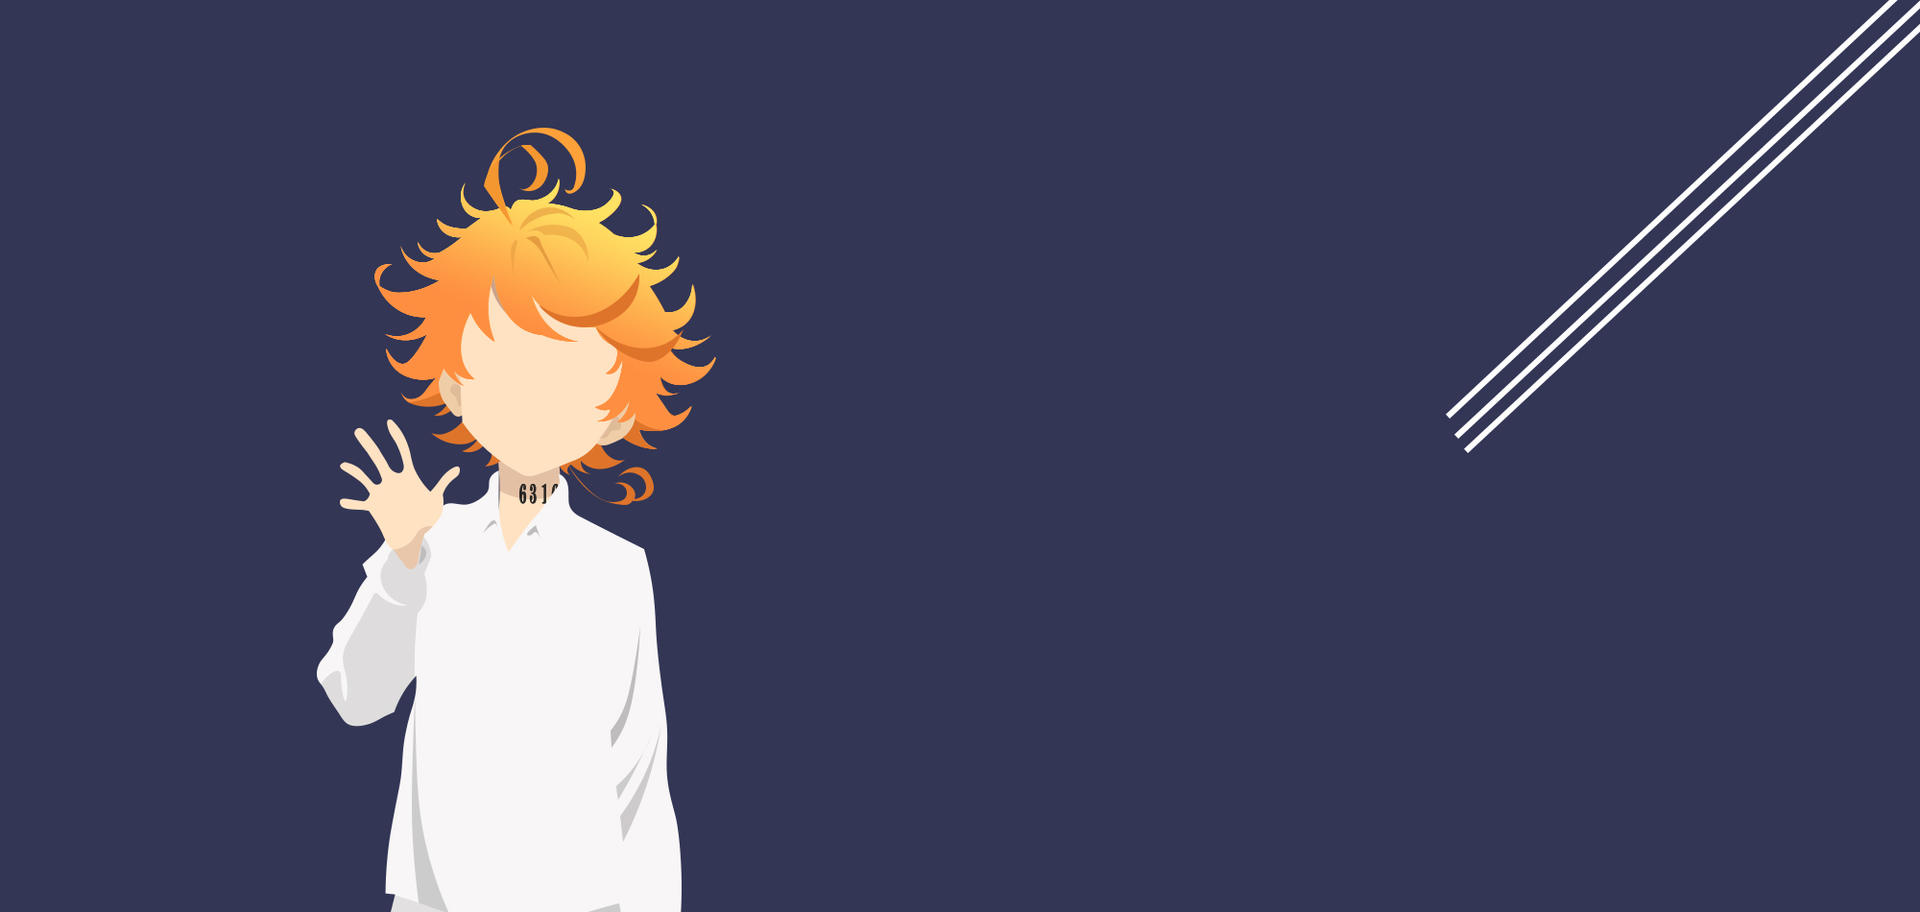 Emma In Promise Neverland Wallpaper Minimalist By Jtwist009 On